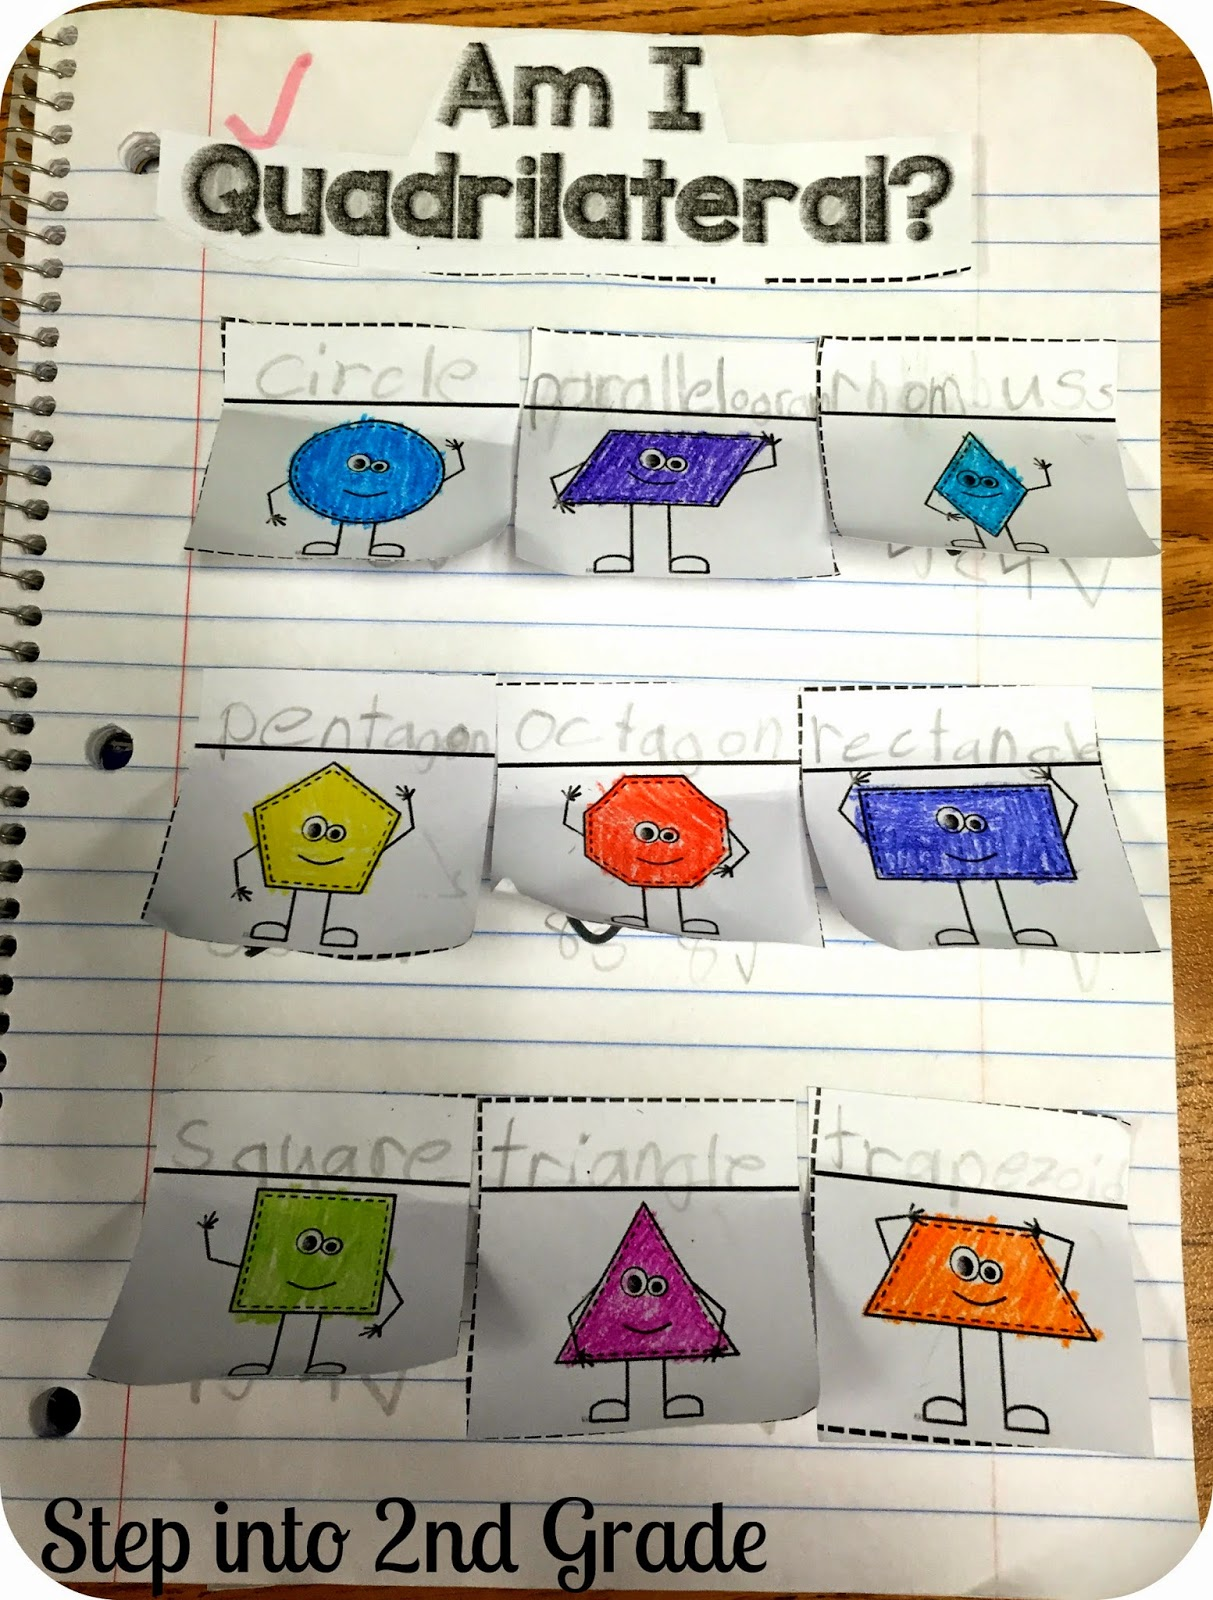 small resolution of 2nd Grade Worksheet On Quadrilaterals   Printable Worksheets and Activities  for Teachers